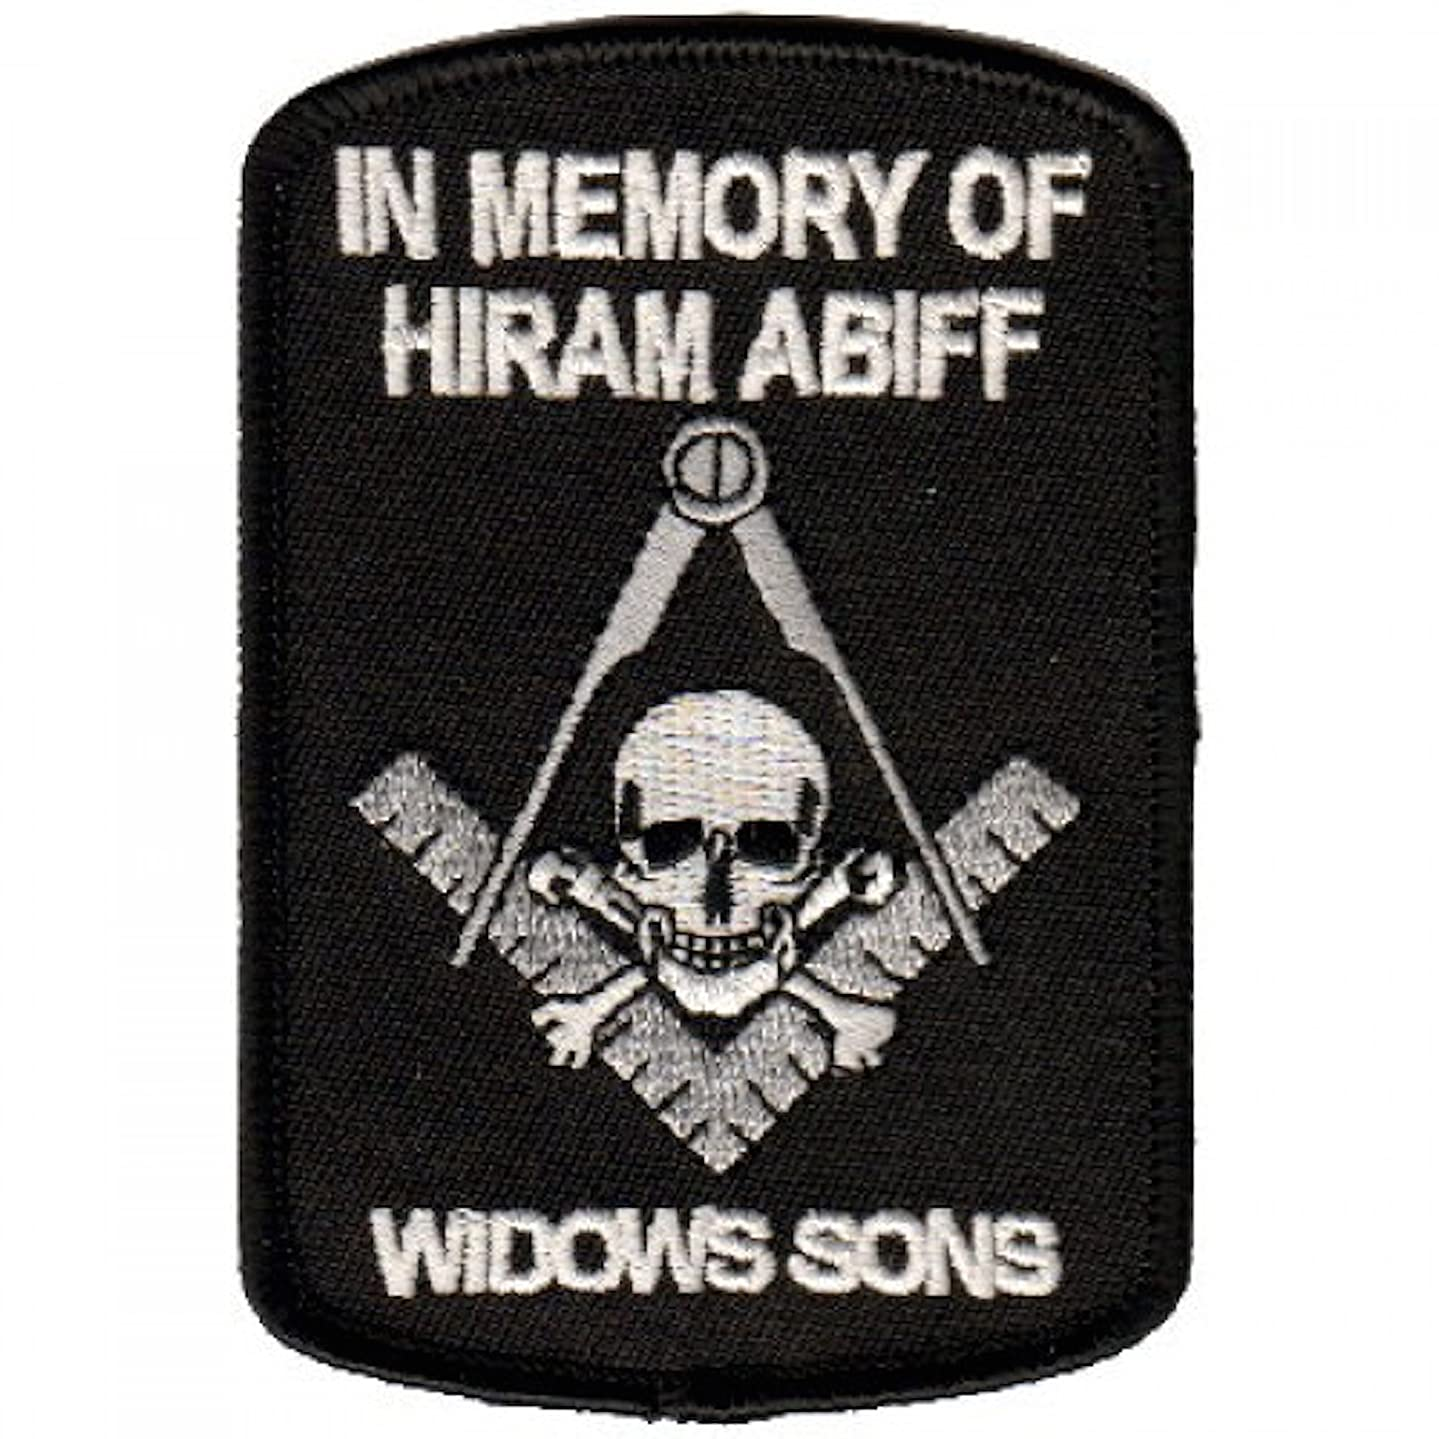 IN MEMORY OF HIRAM ABIFF WIDOWS SONS Masonic Decorative Machine Embroidered Patch Iron-on Appliques Backing